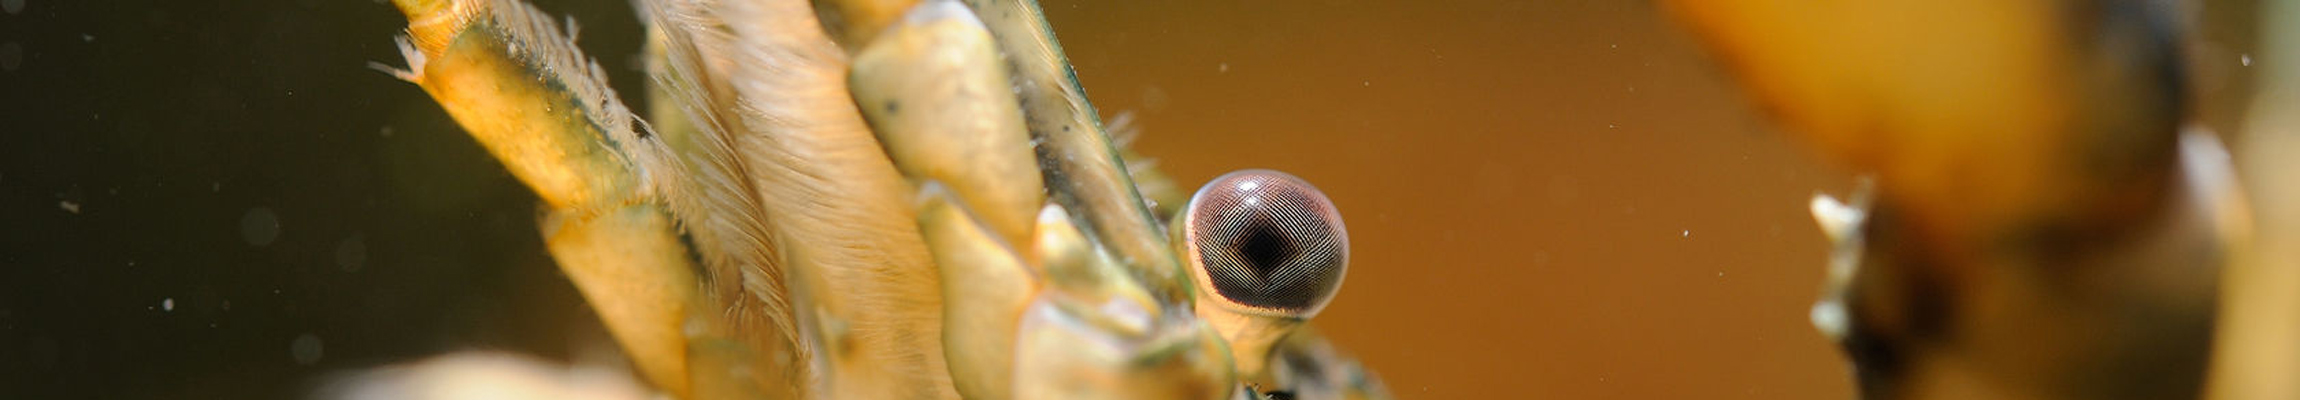 33398864 – head detail of crayfish with antenna and  legs